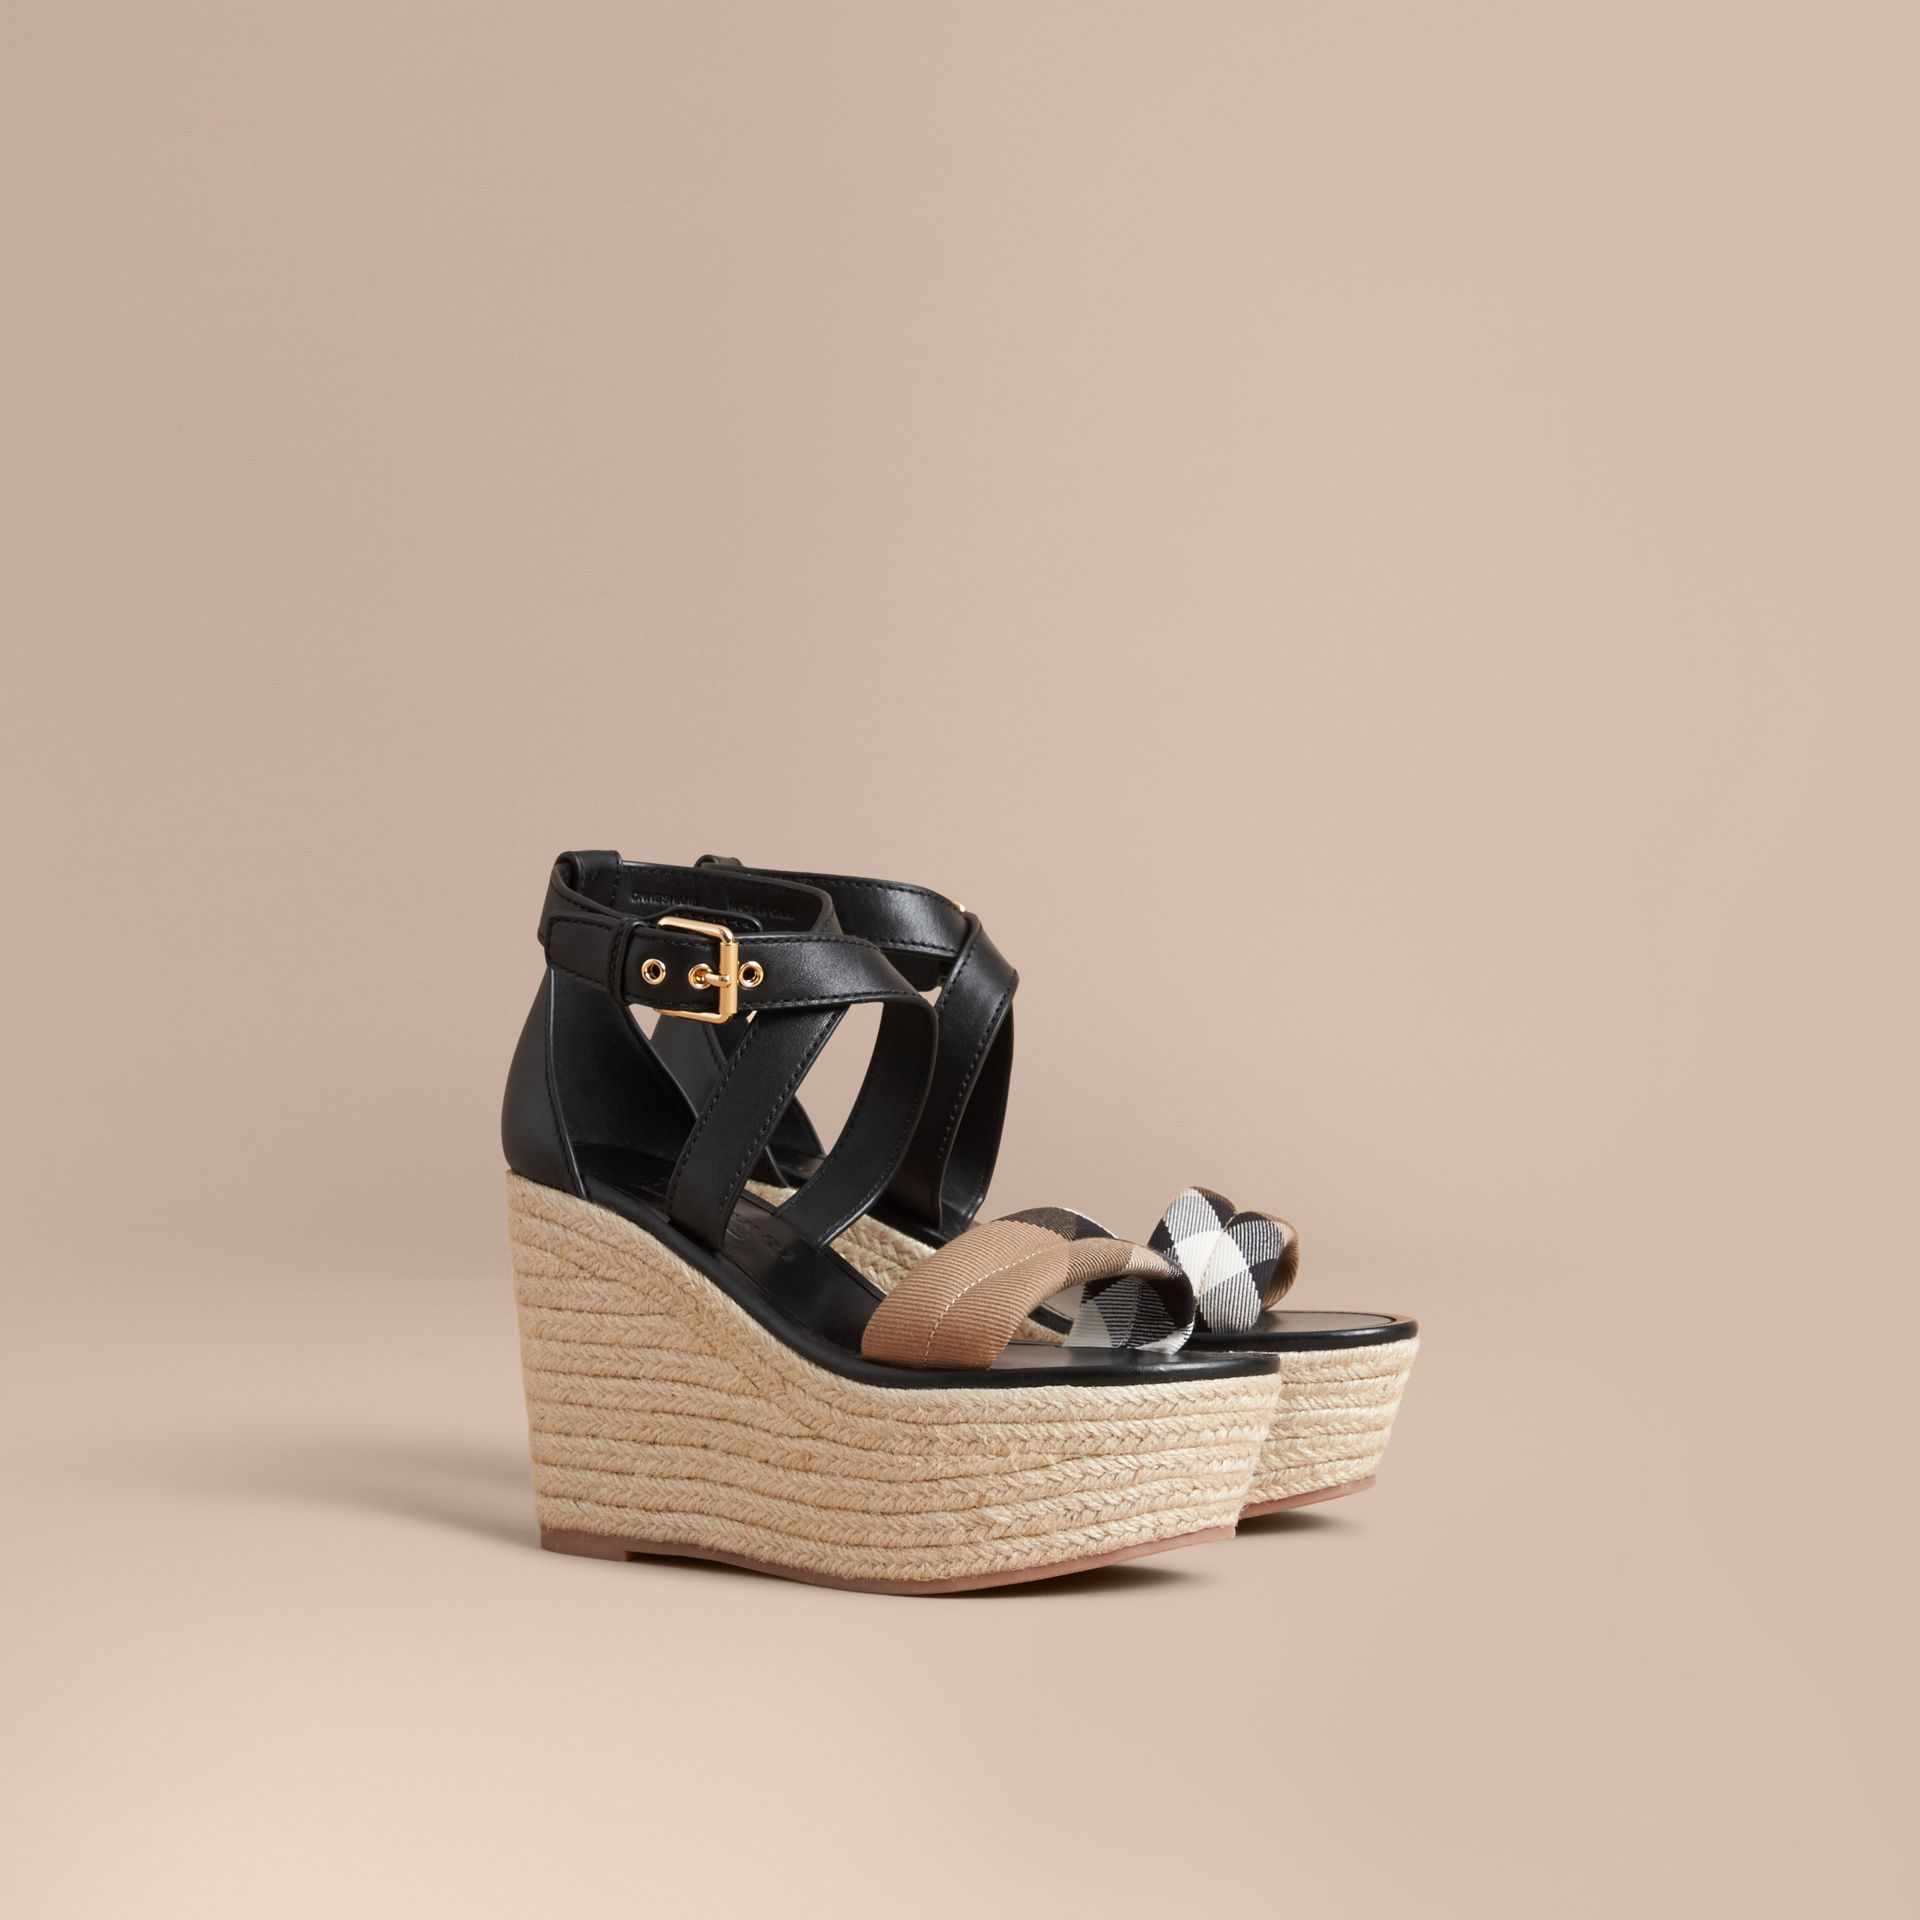 Leather and House Check Platform Espadrille Wedge Sandals in Black - Women | Burberry - gallery image 1